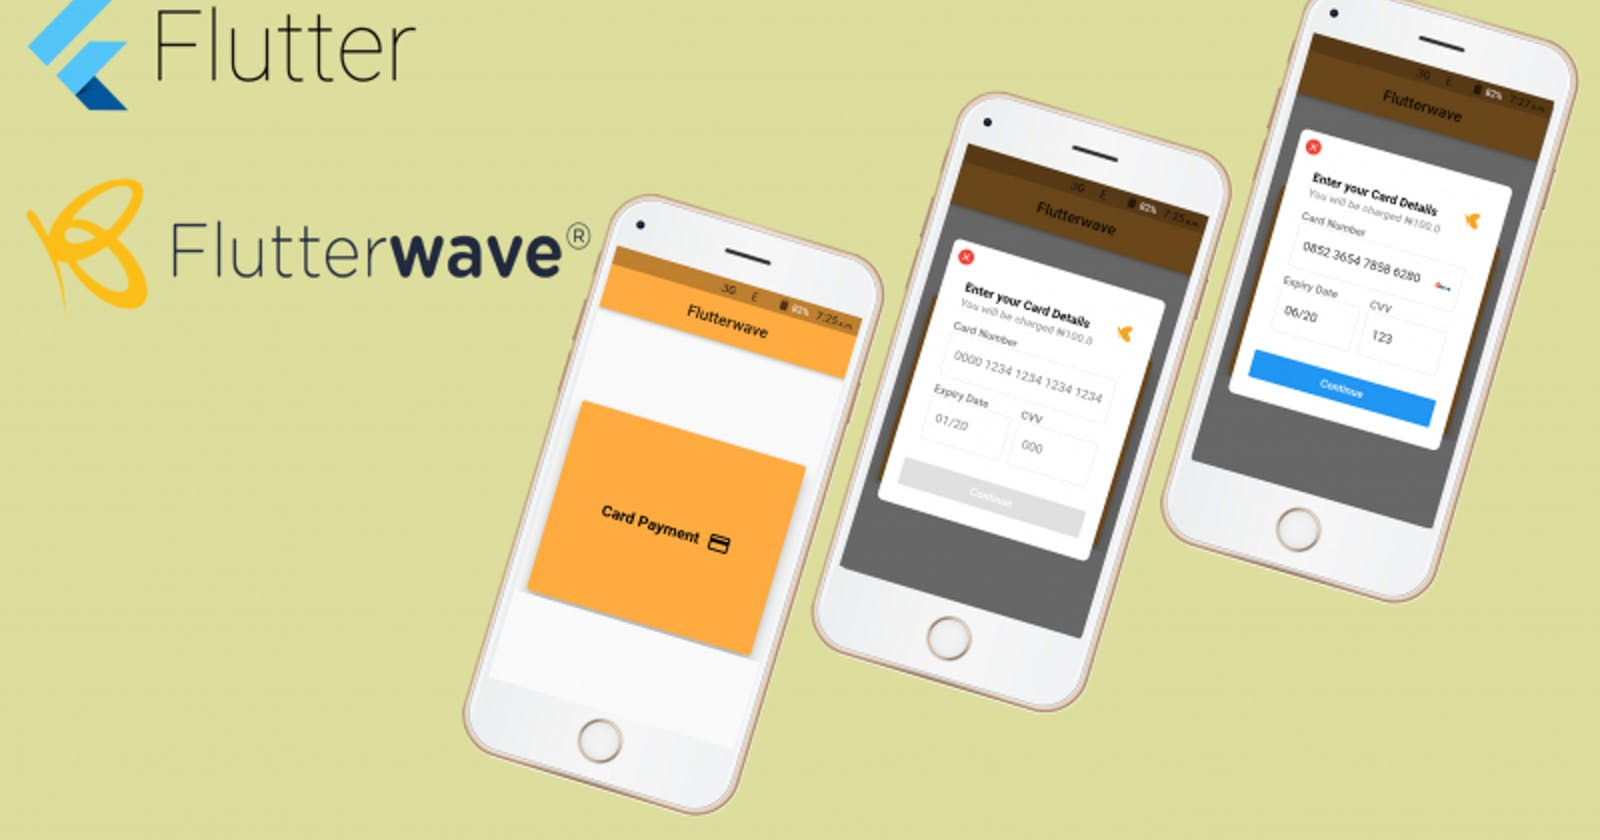 Build a Simple Payment App in 10 minutes using Flutter and Flutterwave